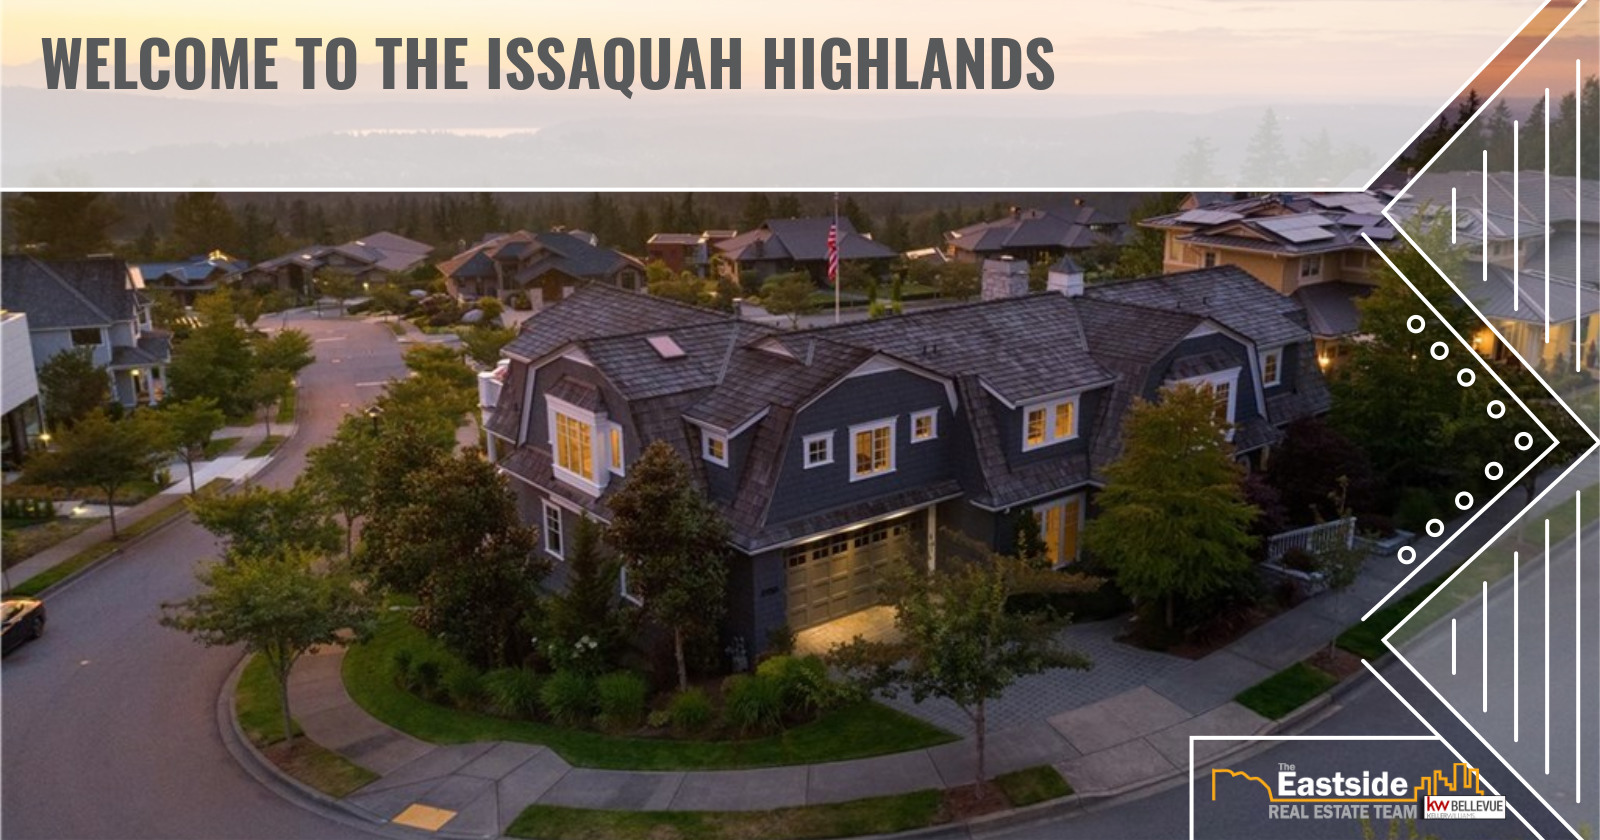 Welcome to The Issaquah Highlands